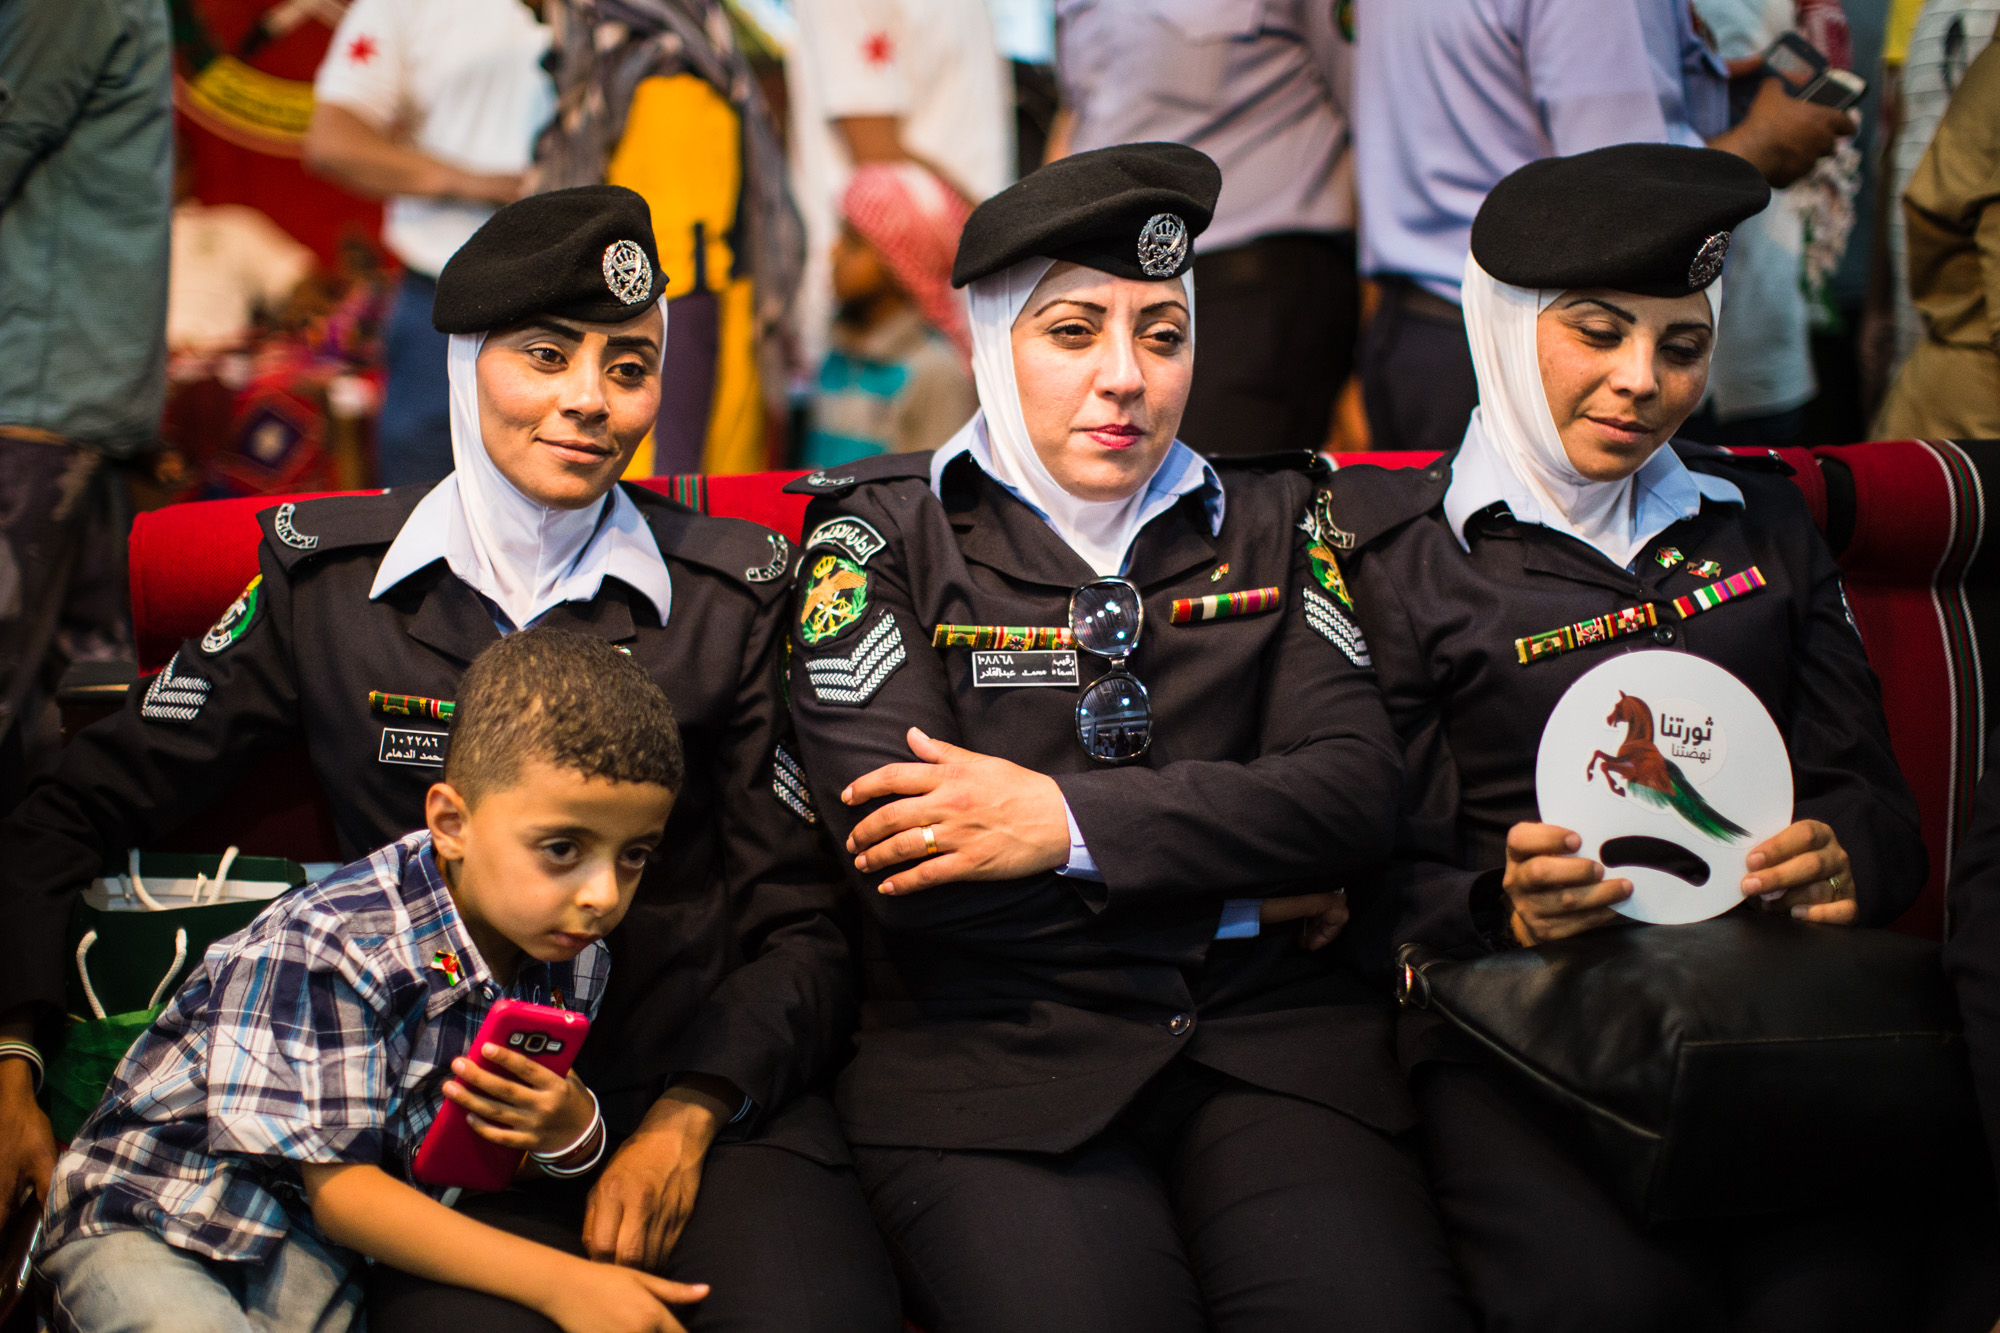 Jordanian women police officers sit with their kids at a festival marking the 100th anniversary of the Great Arab Revolt in Amman, Jordan, on June 3, 2016.